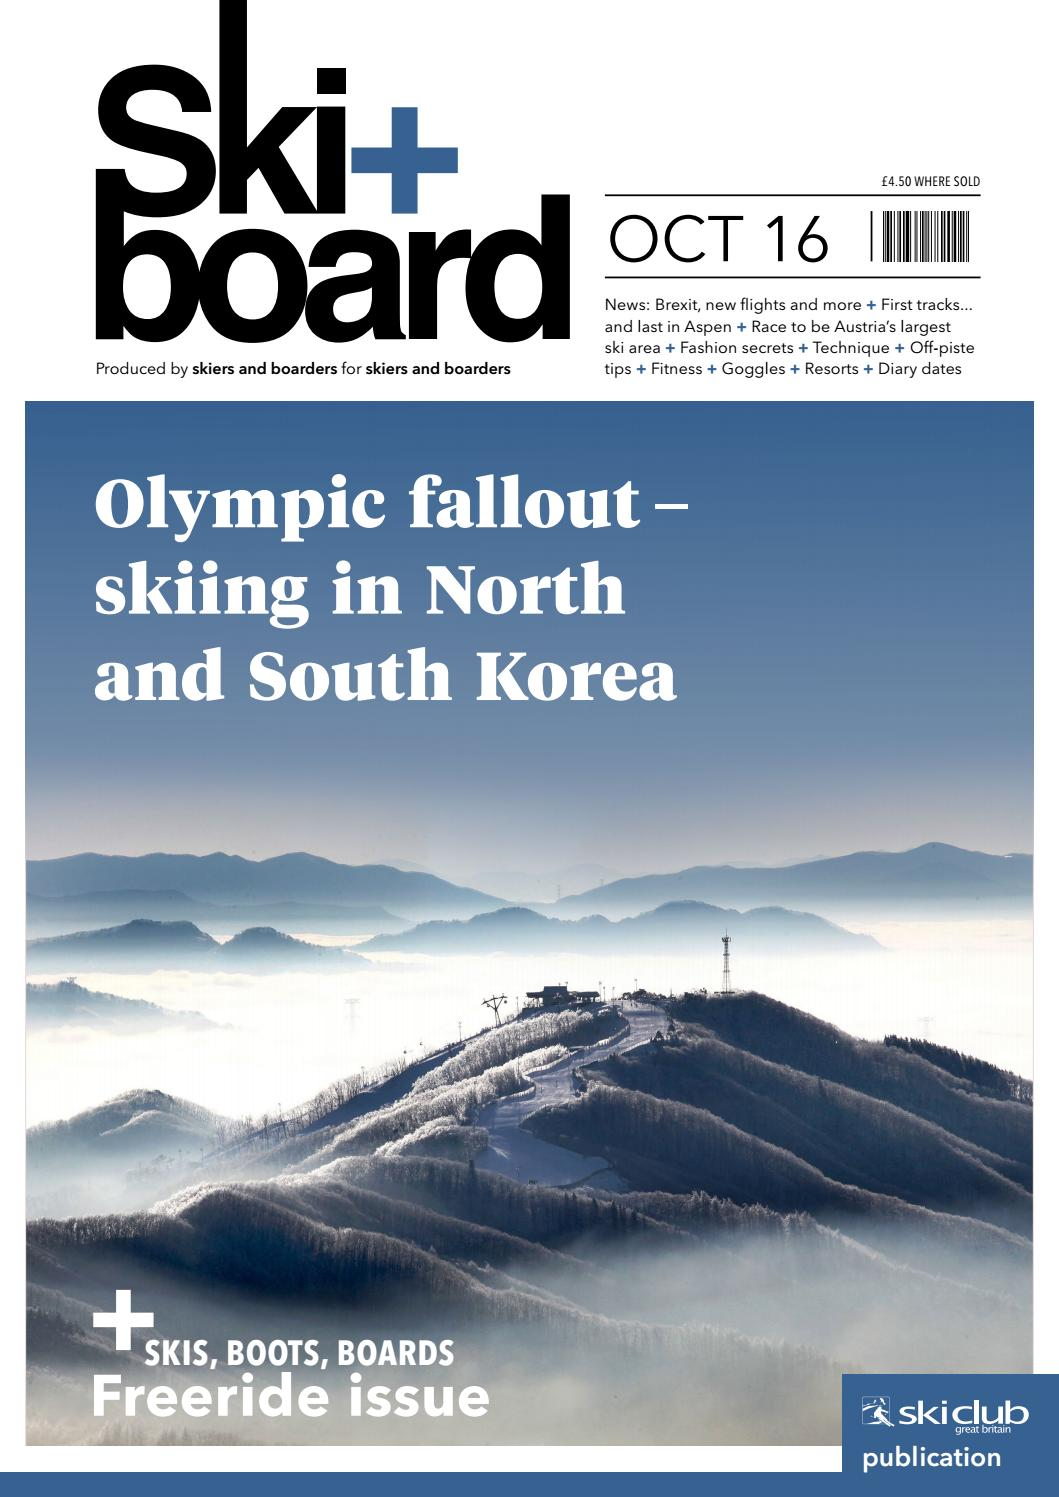 Festival Les Cheminées Du Rock Ski Board October 2016 By Ski Club Of Great Britain Issuu